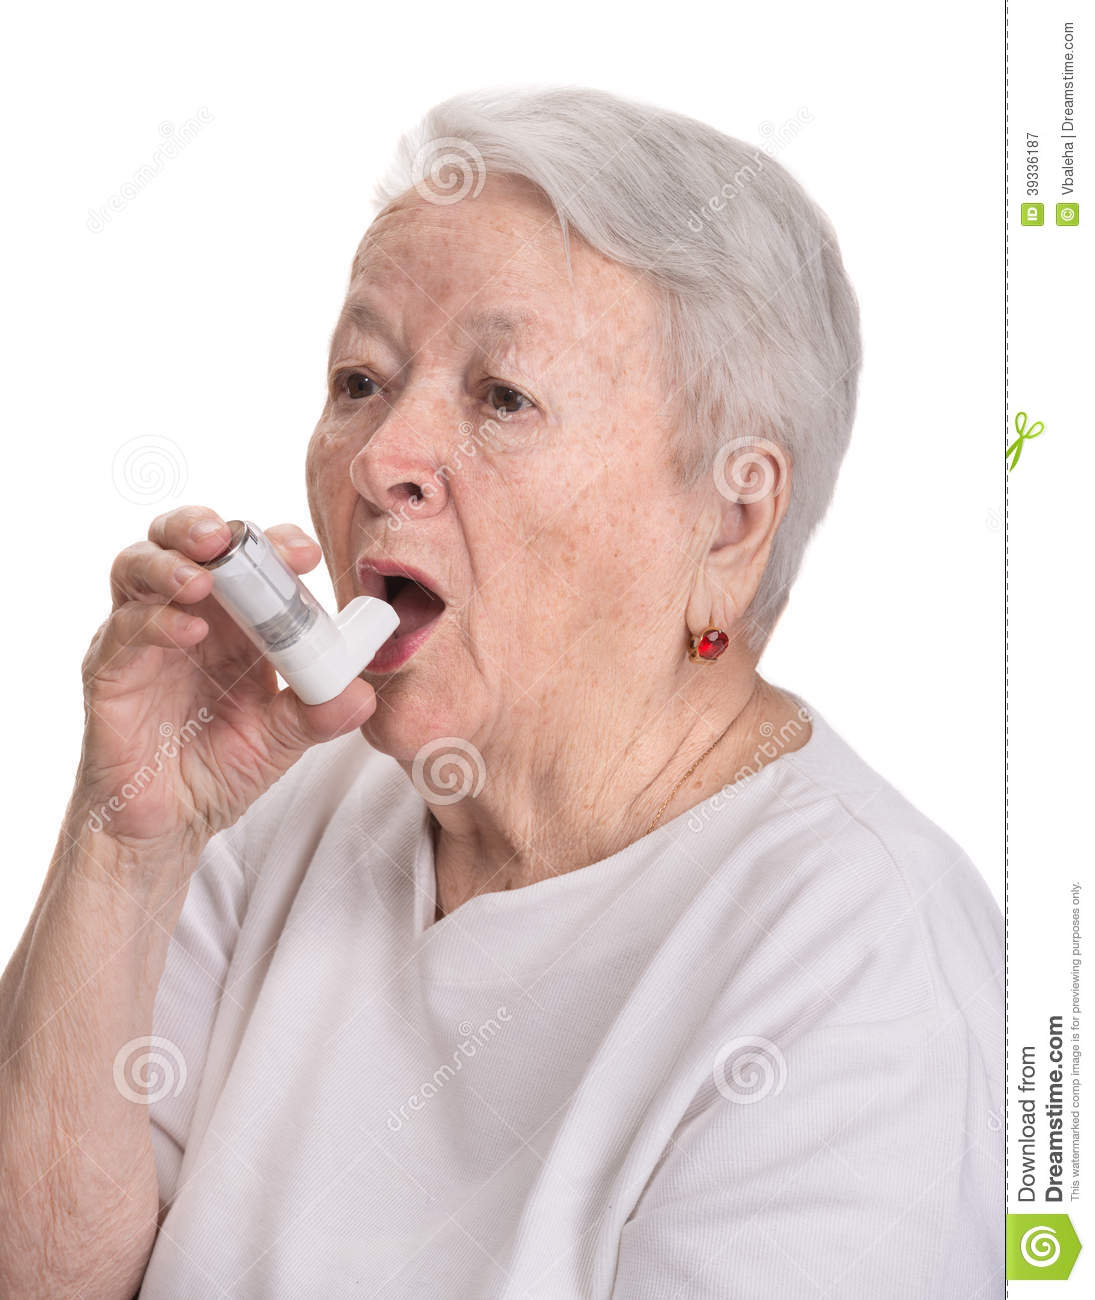 Senior Woman With Asthma Inhaler Stock Photo - Image: 39336187